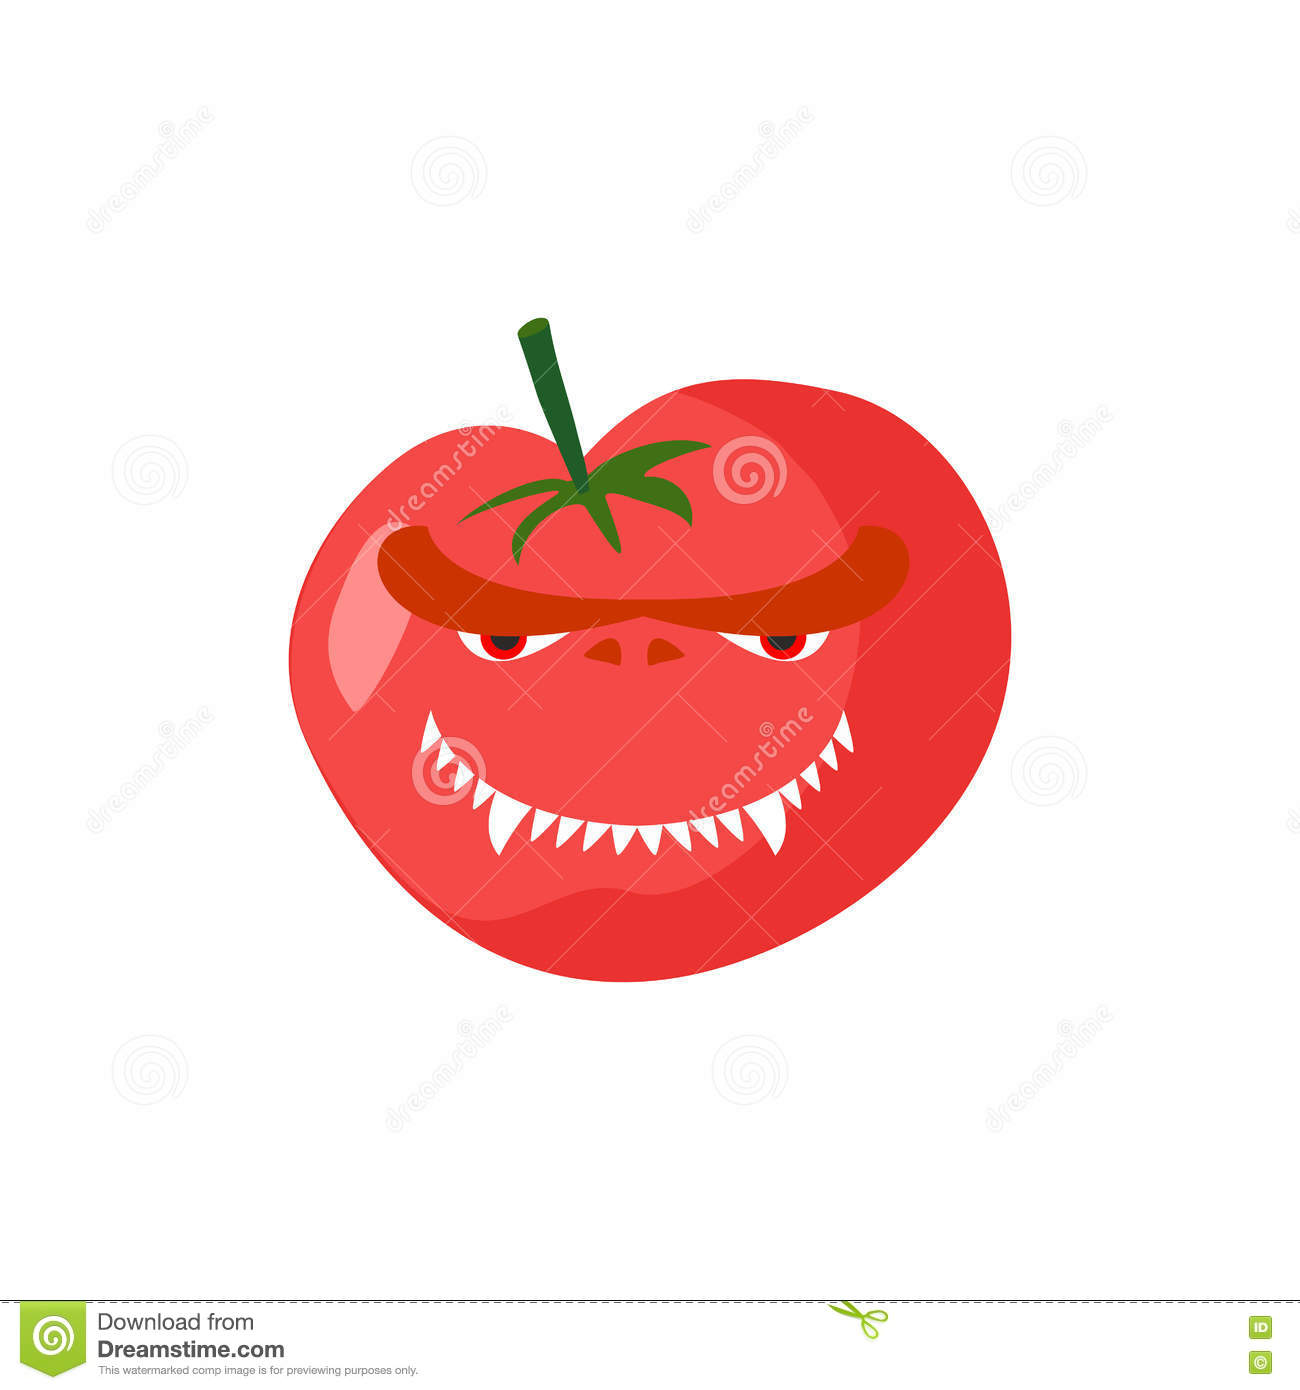 Angry Tomato  Aggressive Red Vegetable  Dangerous Fruit